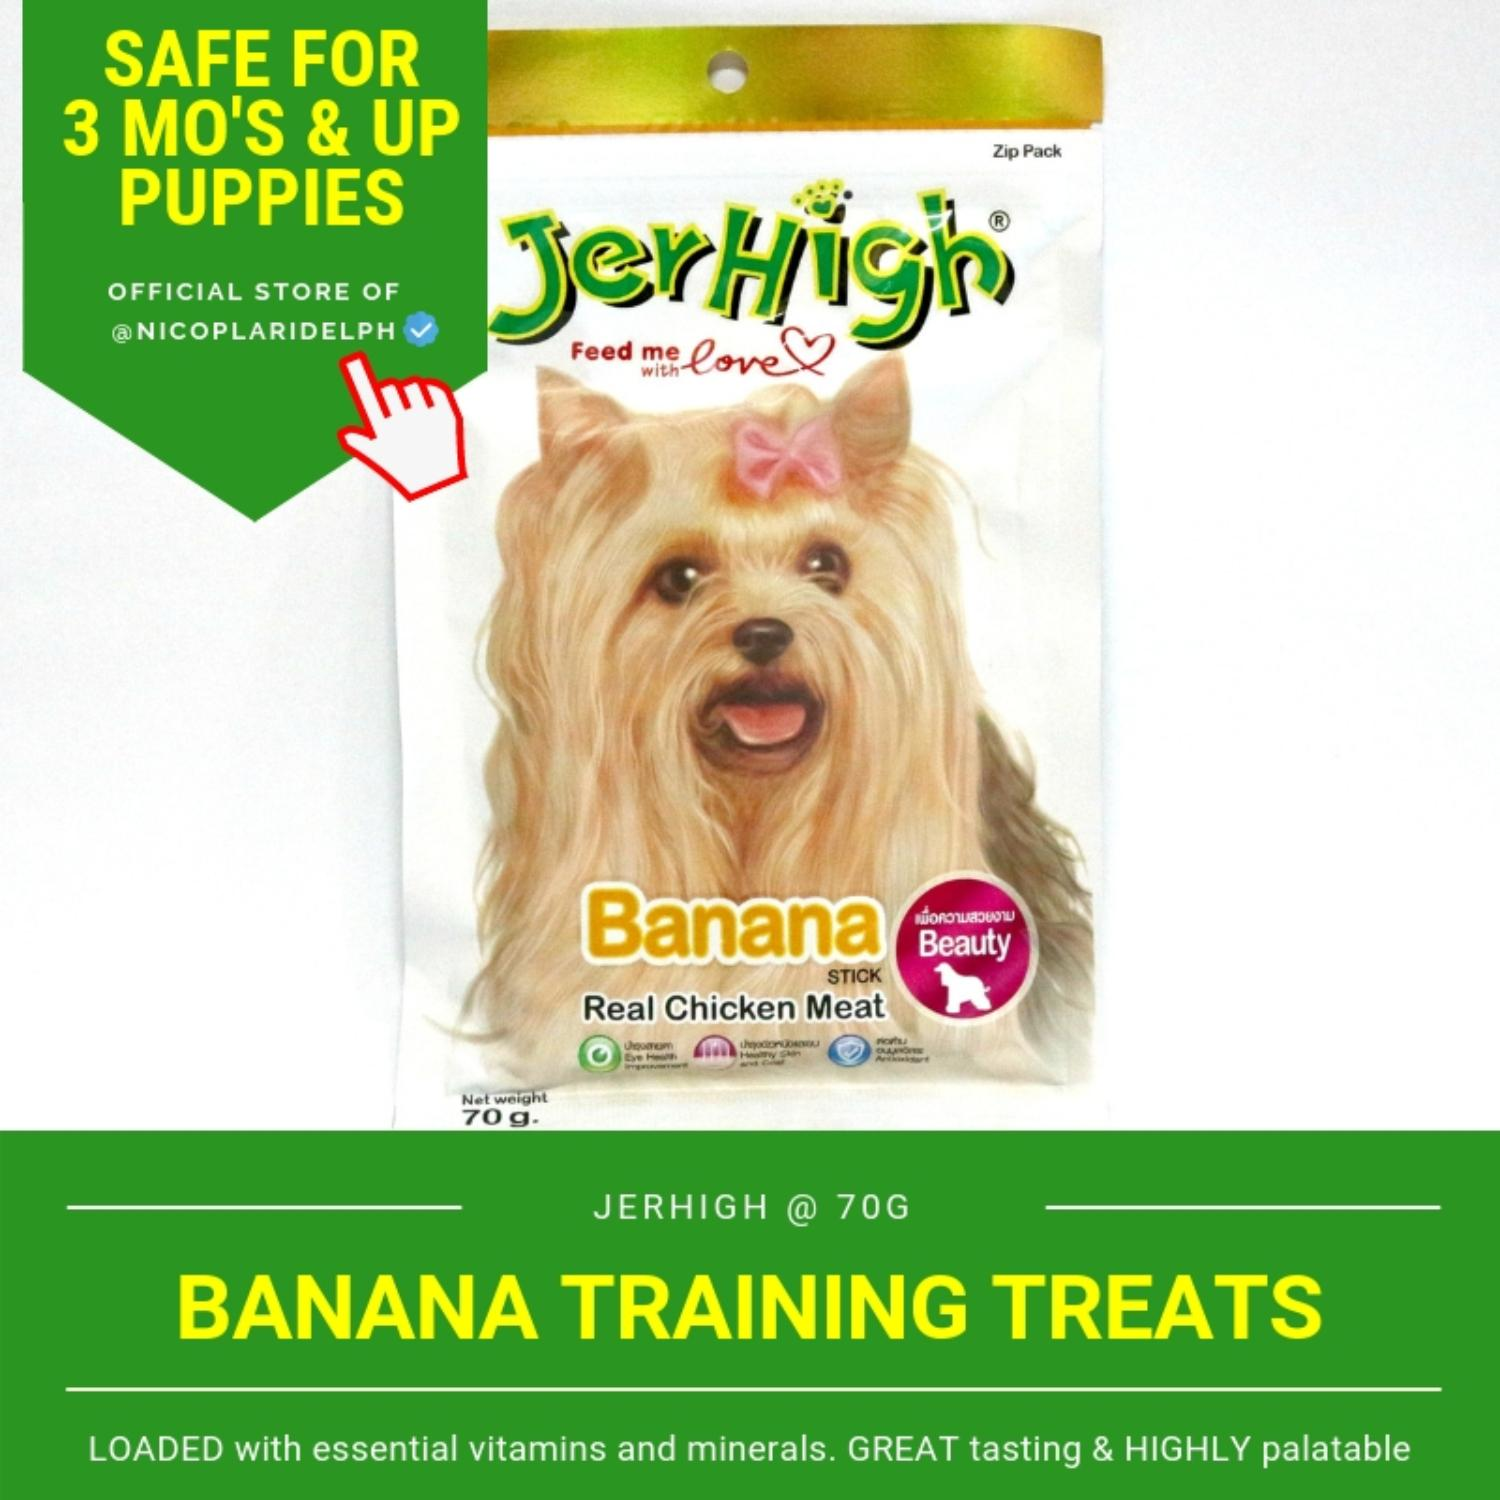 Jerhigh Banana Stick With Real Chicken Meat For Puppies And Adult Dogs (70g) By Nicoplaridelph.